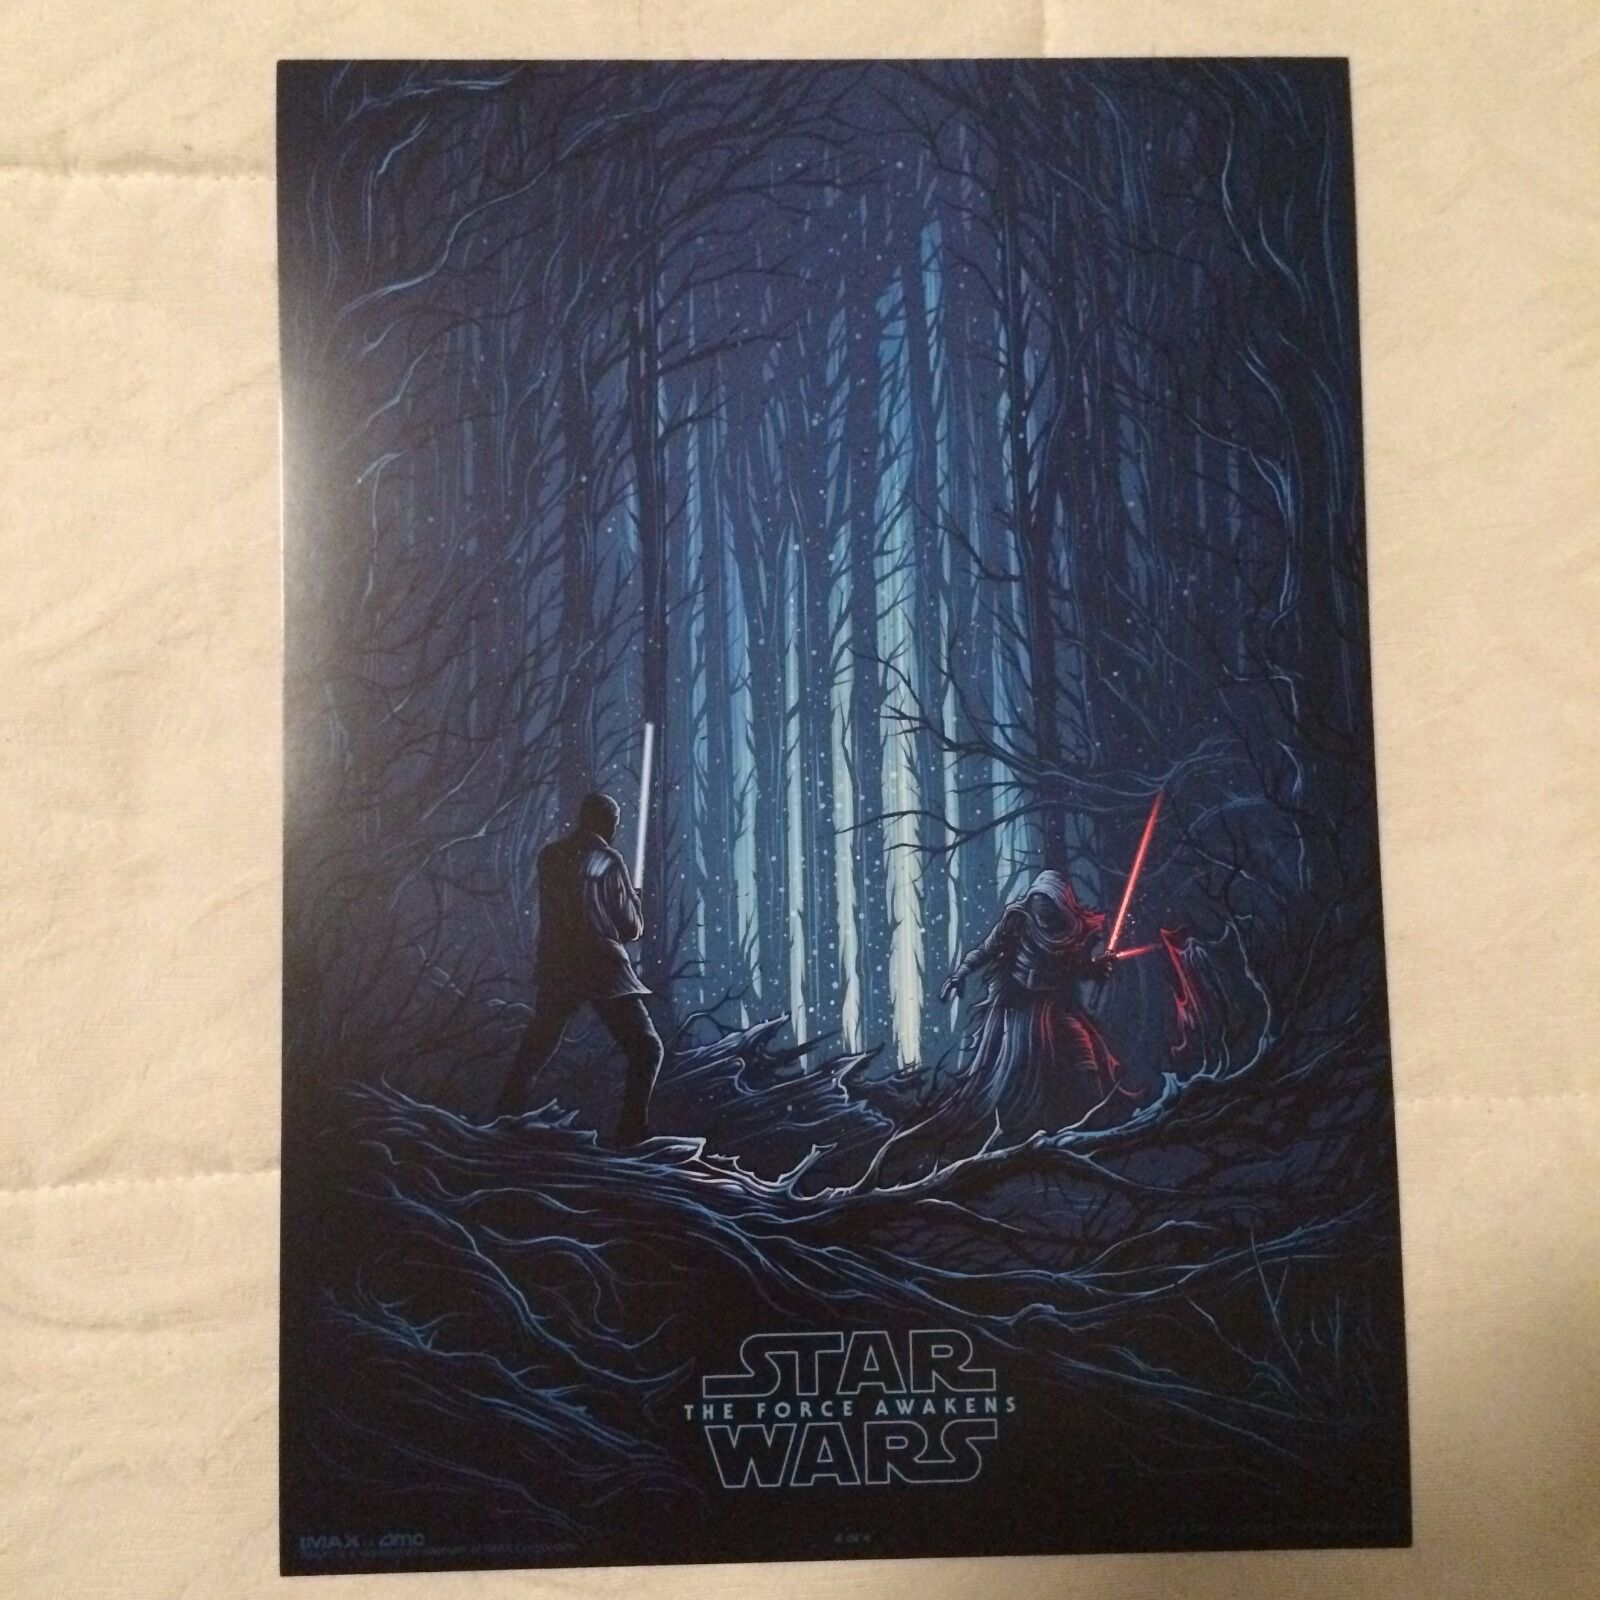 Купить  STAR WARS: THE FORCE AWAKENS (Kylo Ren & Finn) EXCLUSIVE AMC IMAX 9.5x13